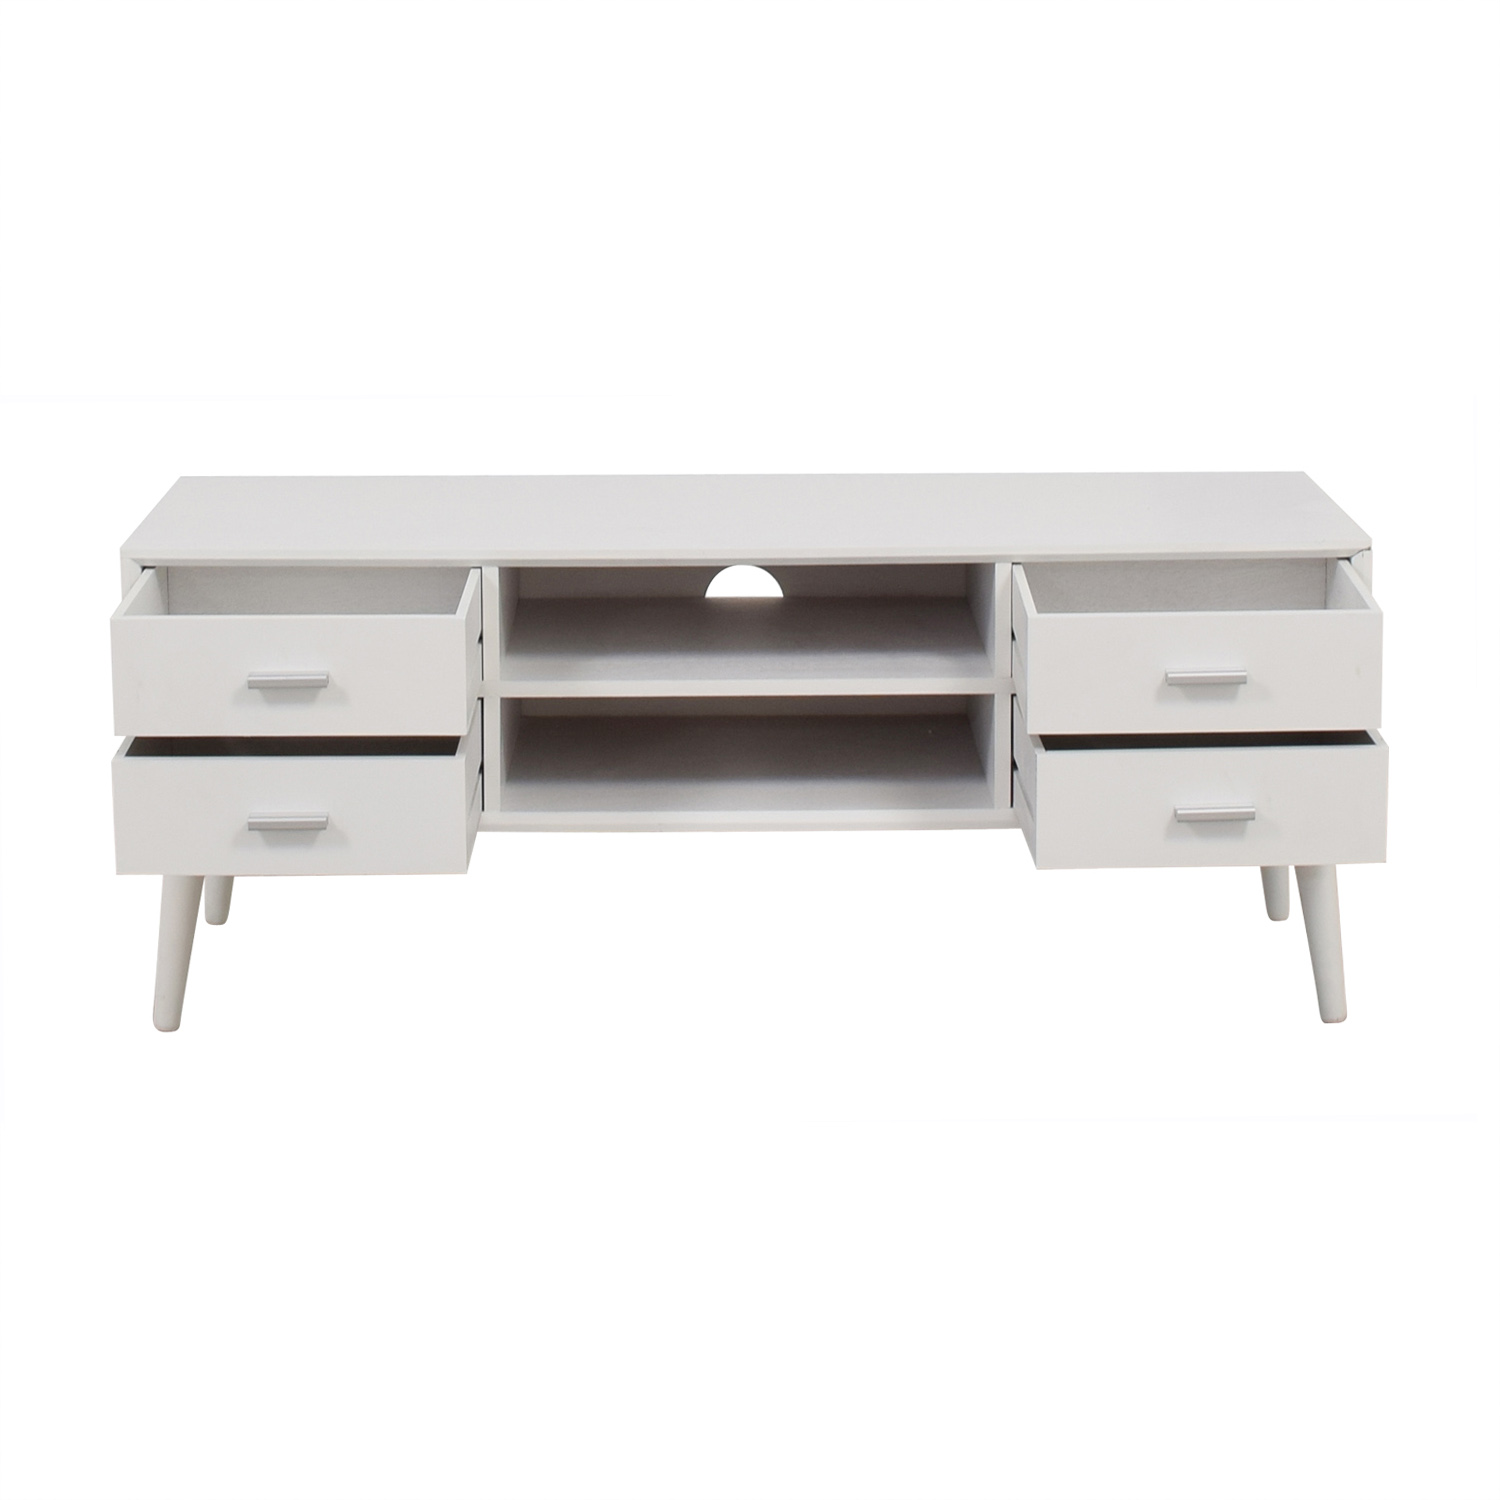 Corrigan Studio Corrigan Studio White Media Console on sale